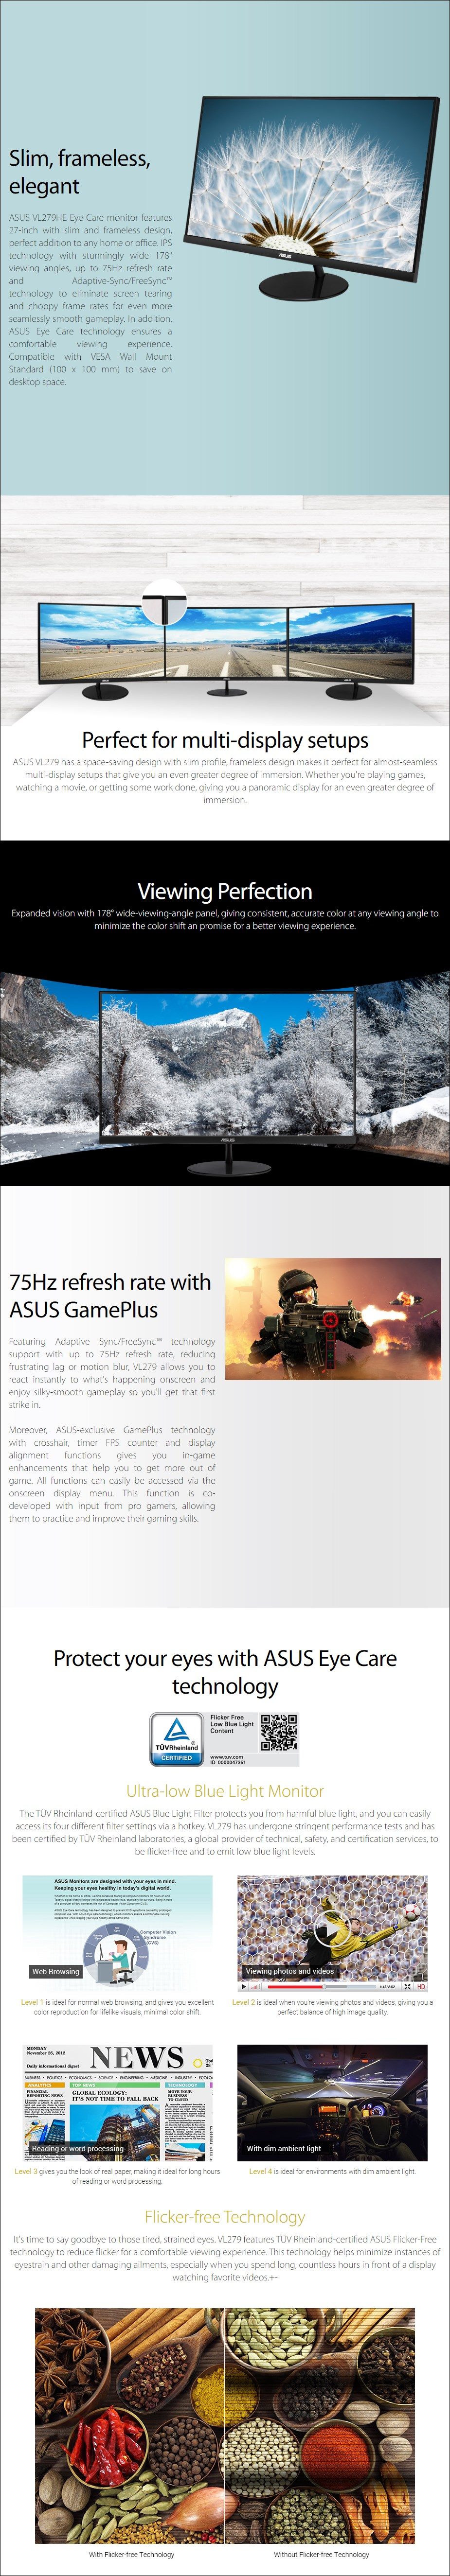 """ASUS VL279HE 27"""" 75Hz Full HD FreeSync Eye Care IPS Monitor - Overview 1"""